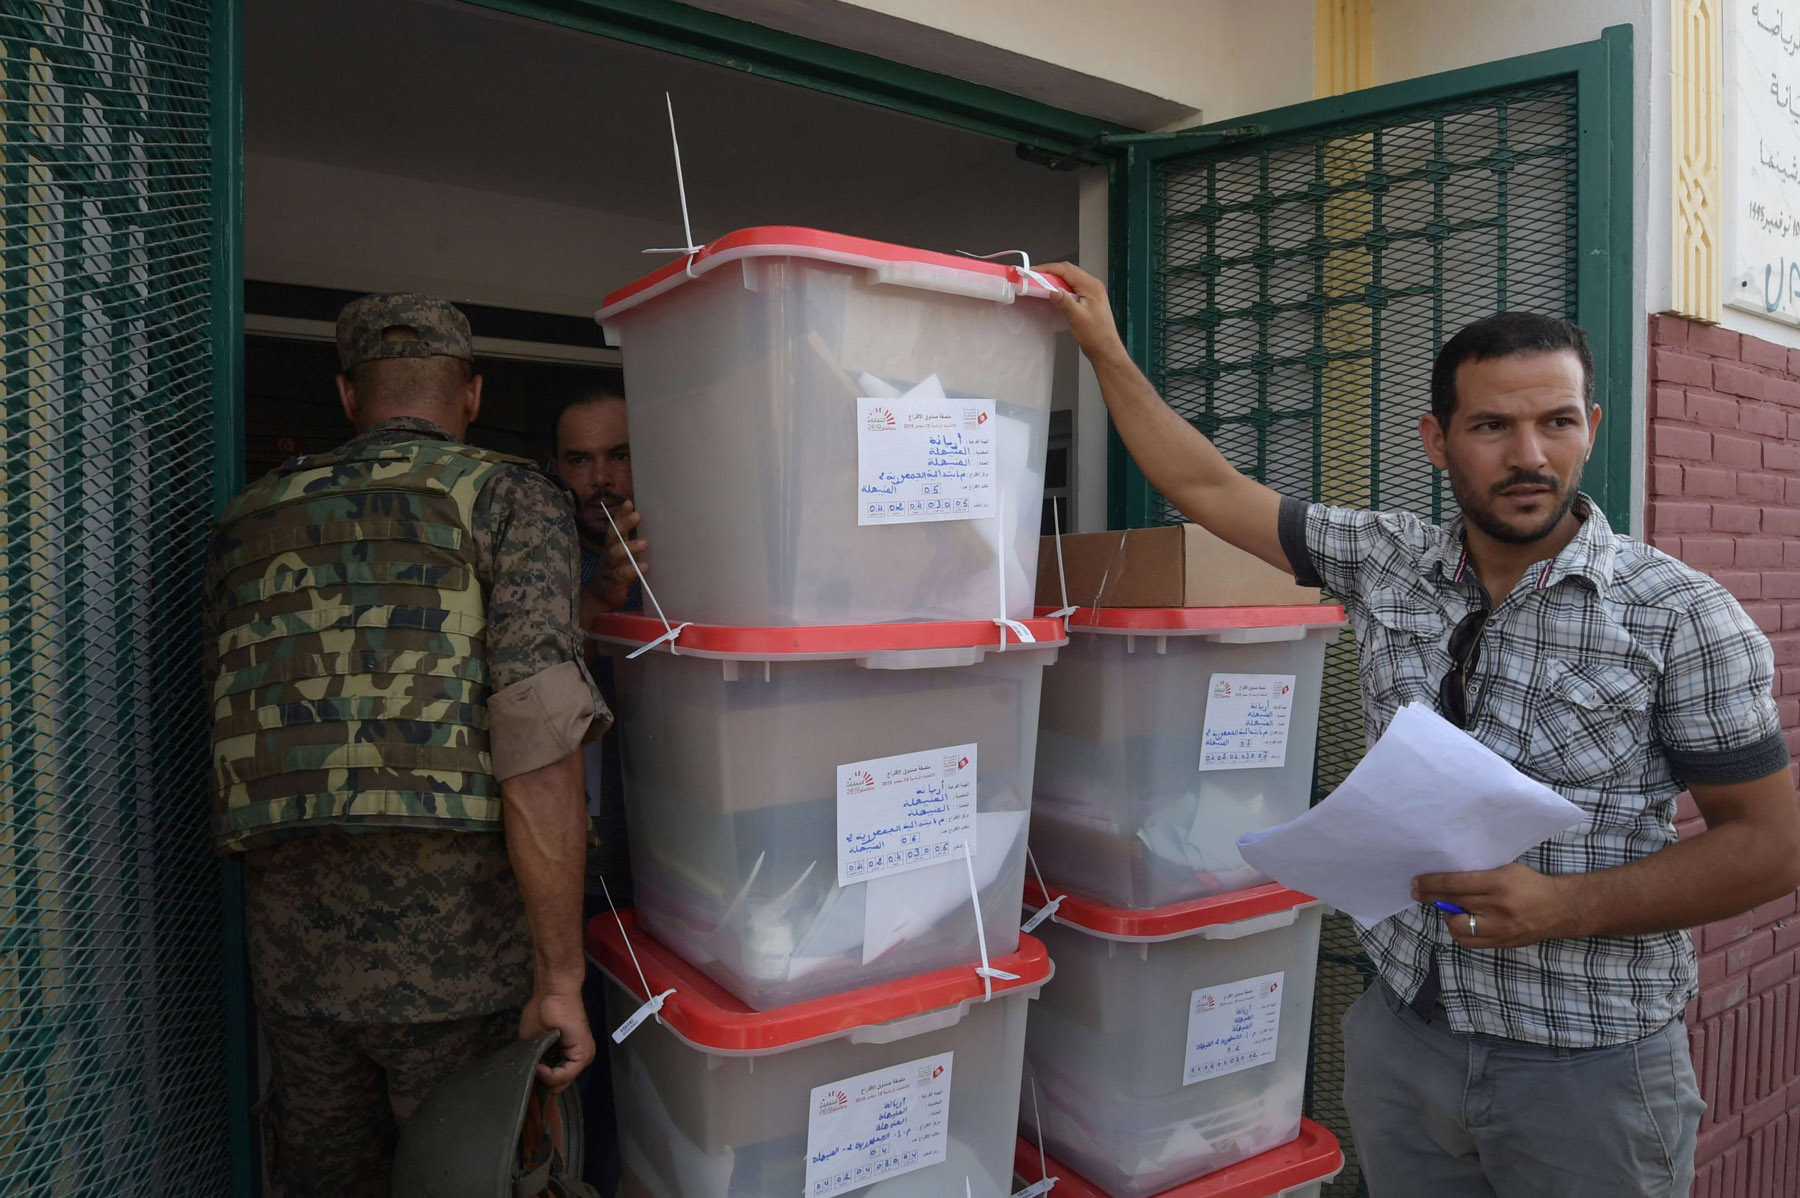 Countdown to D-day. Workers of Tunisia's Independent High Authority for Elections dispatch ballot boxes to polling stations in Tunis, September 14. (AFP)